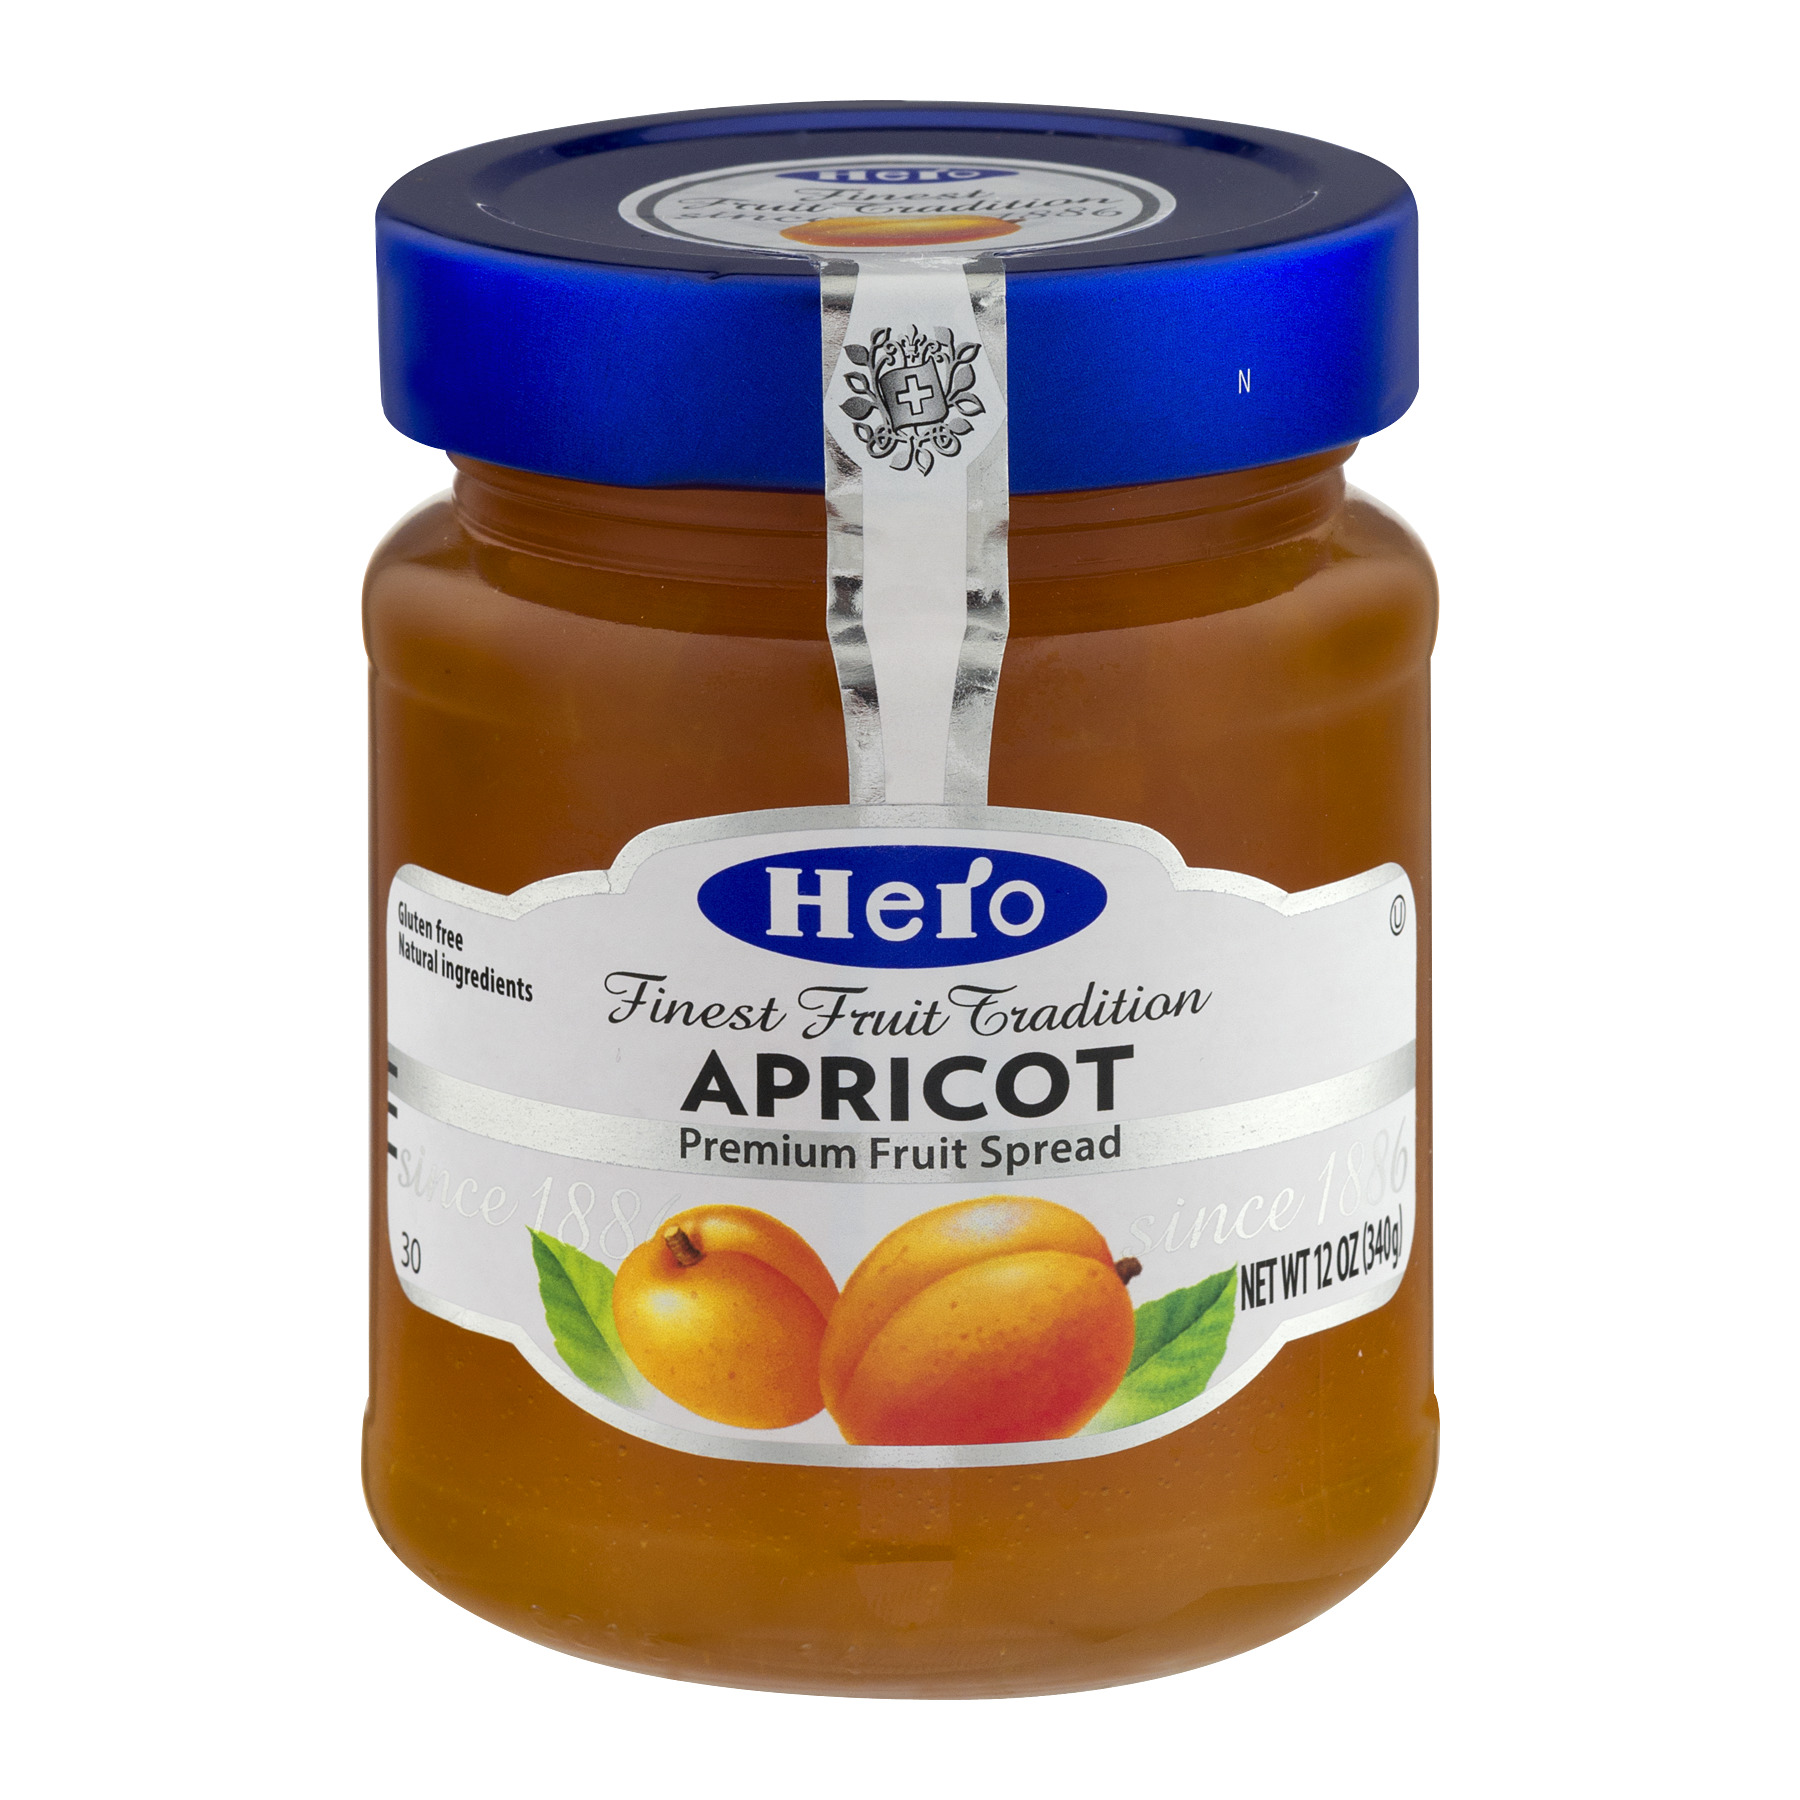 Hero Apricot Fruit Spread, 12.0 OZ